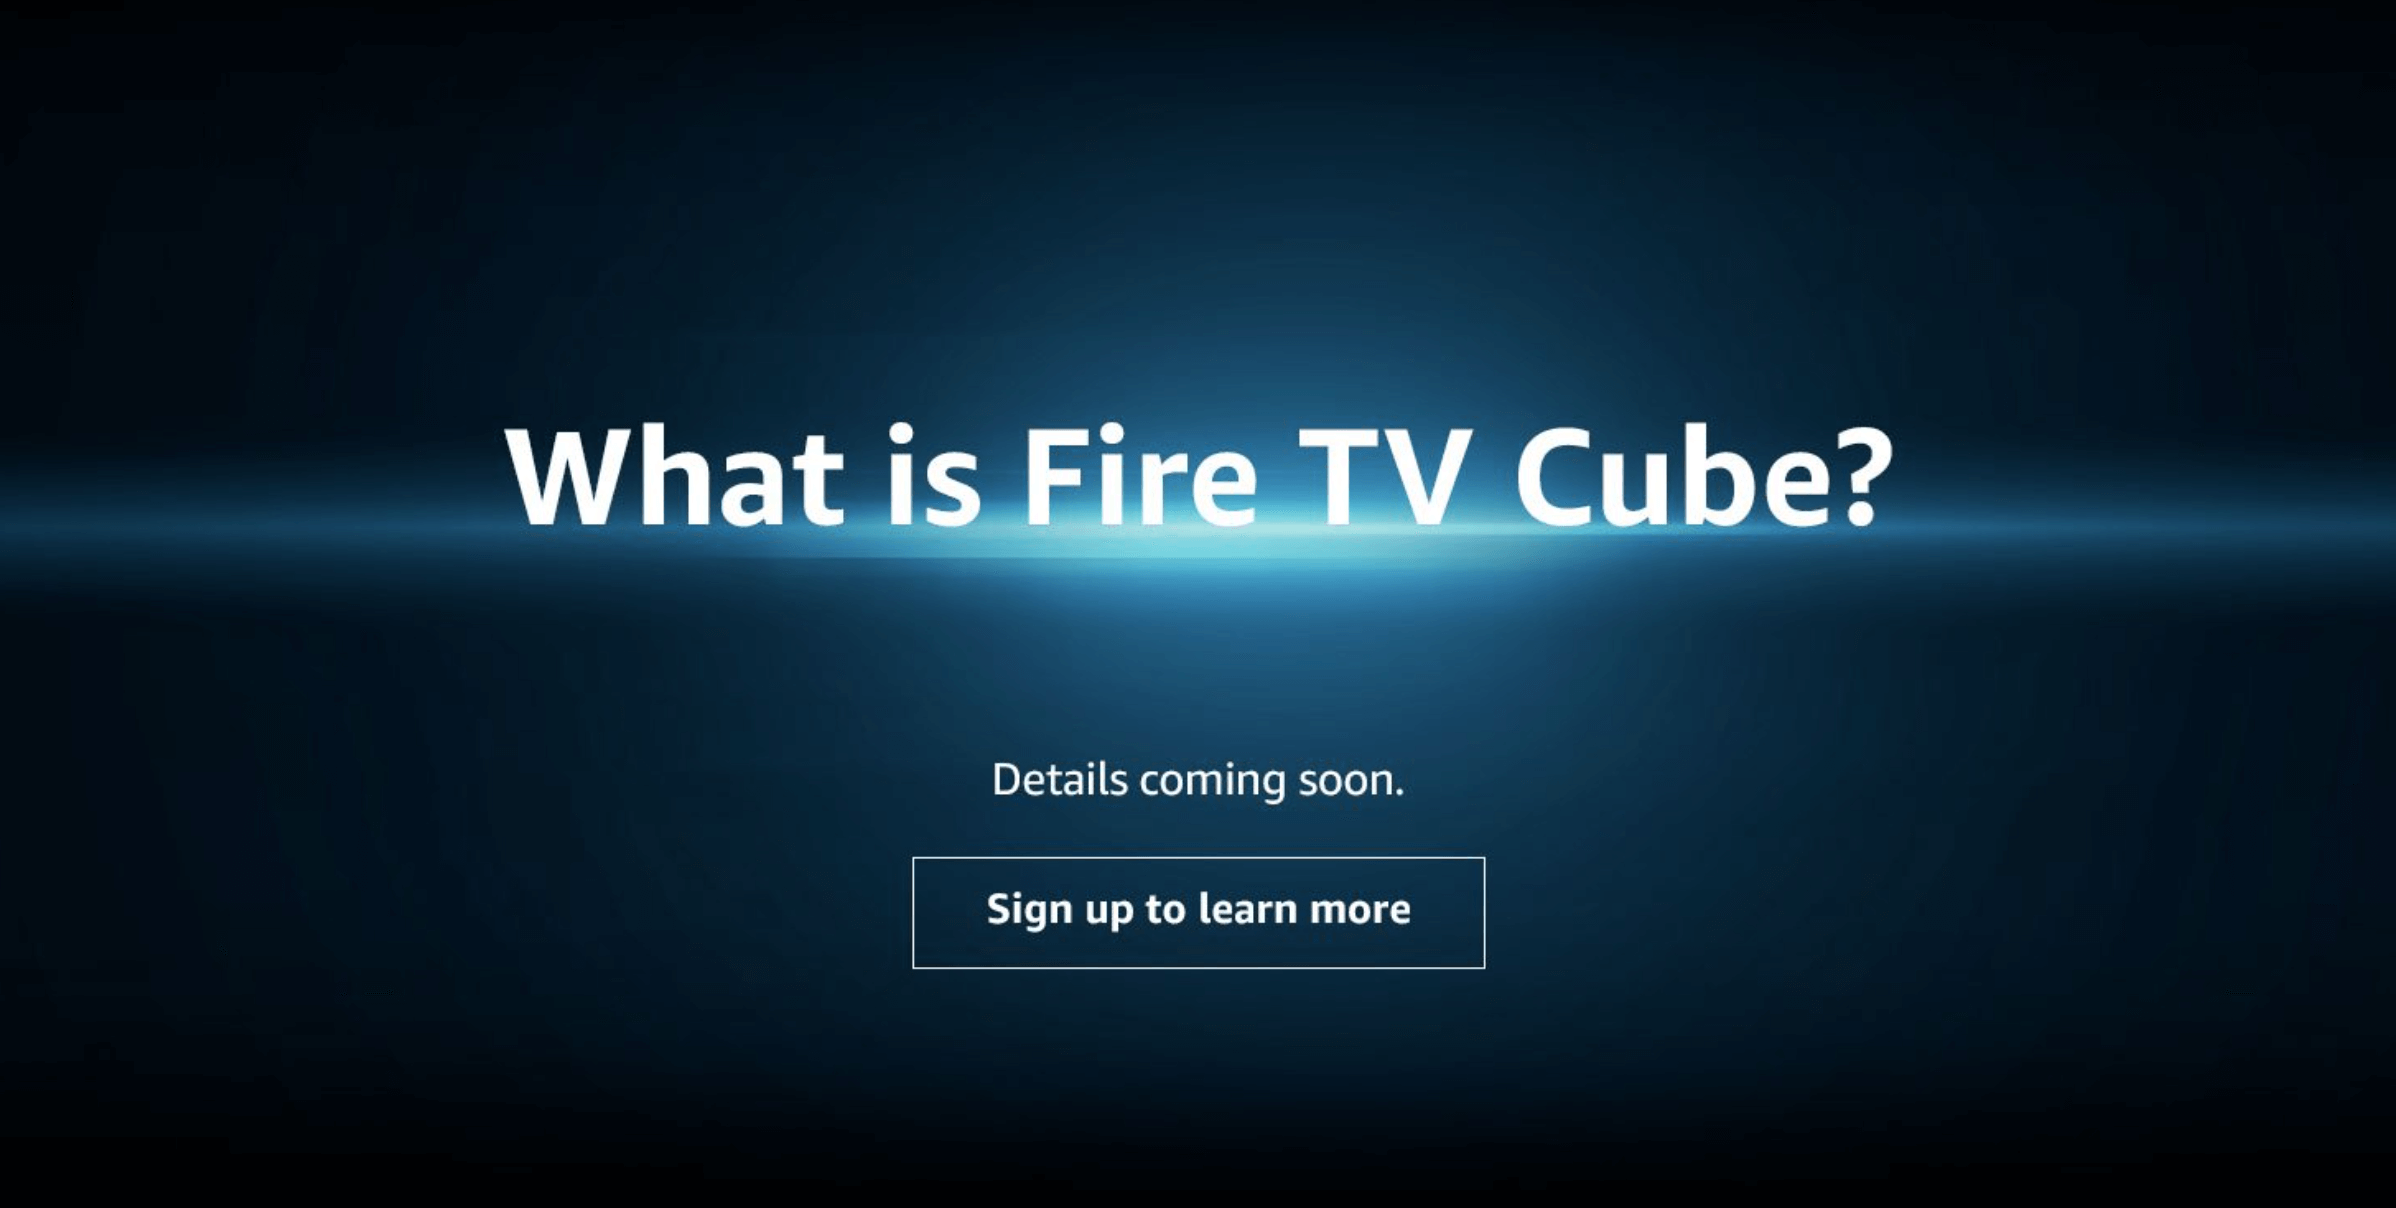 Fire TV Cube coming son